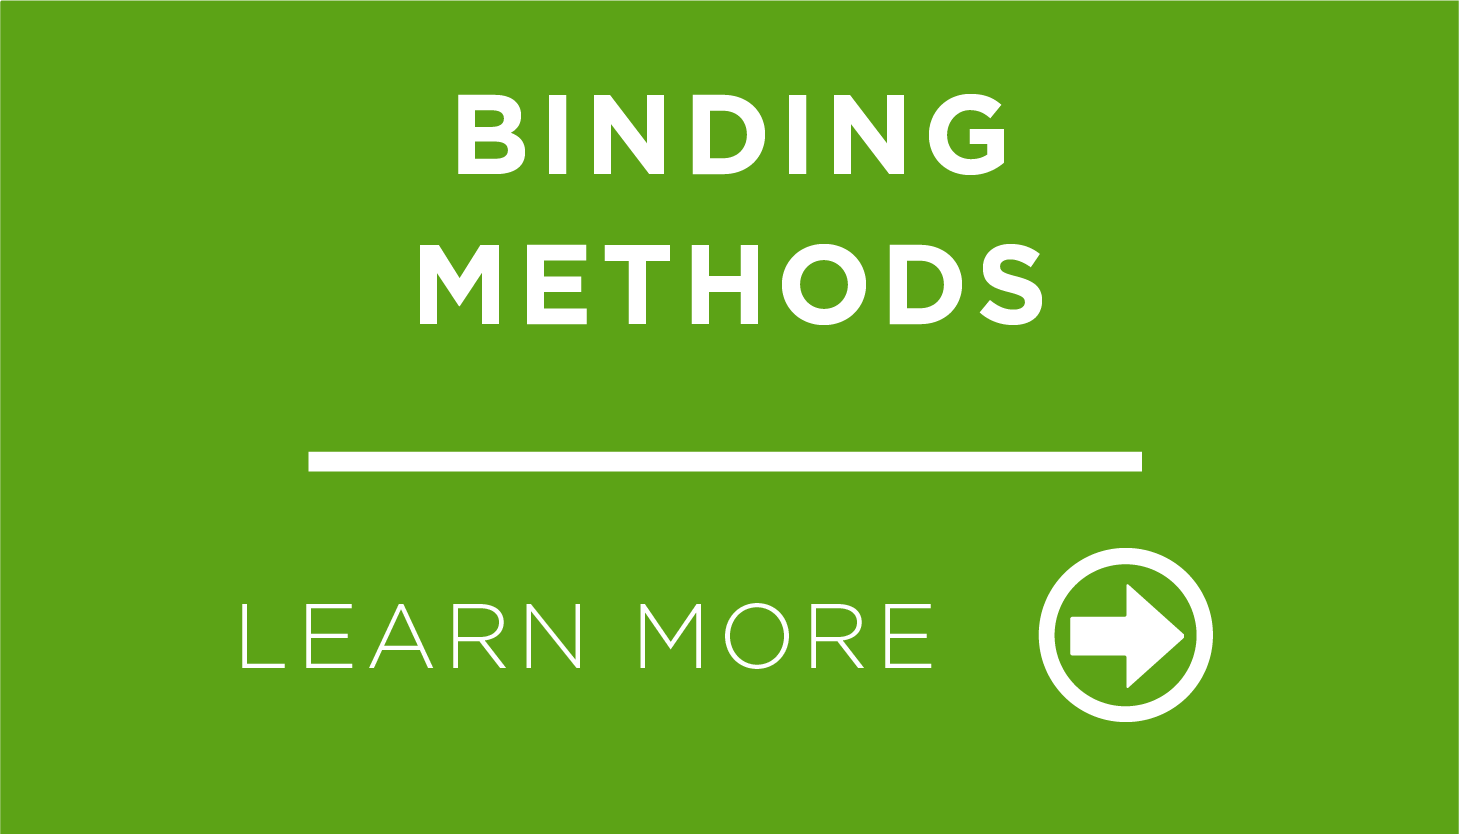 Binding Methods